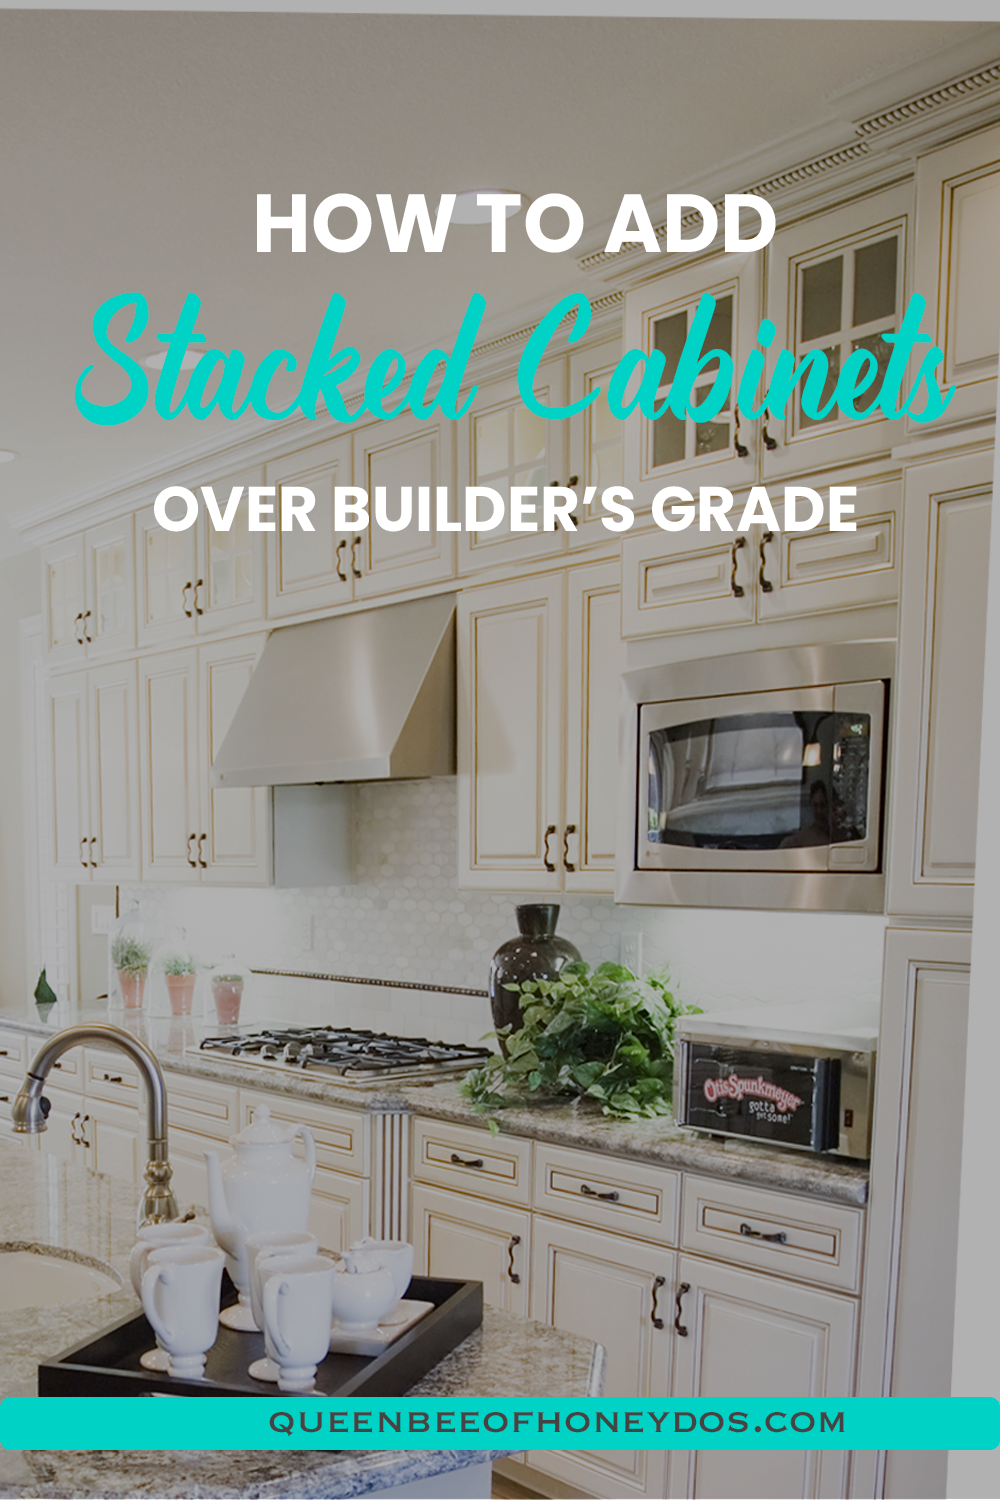 How To Install Stacked Cabinets Over Builder S Grade In 2020 Upper Kitchen Cabinets High End Kitchen Cabinets Woodworking Project Design